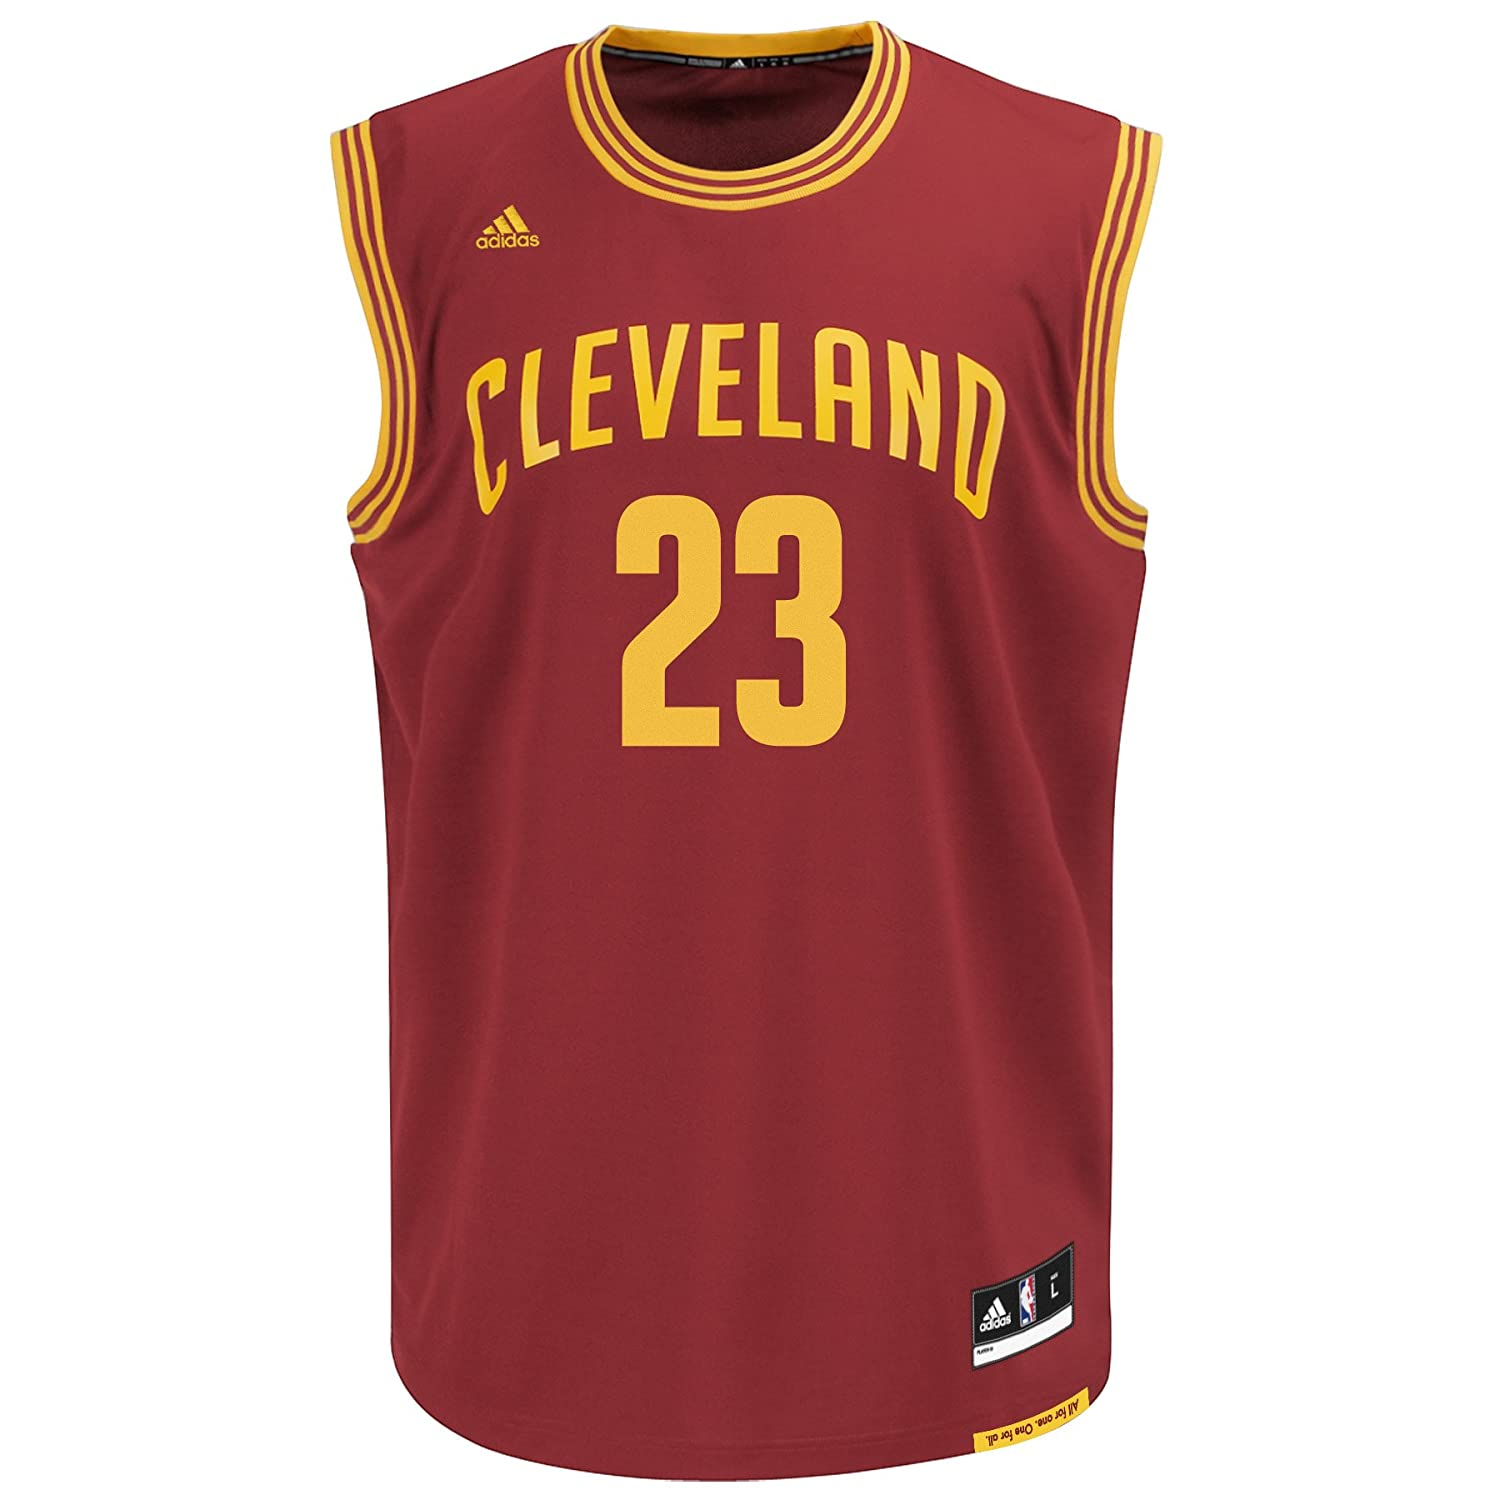 NBA Cleveland Cavaliers, LeBron James, Replica Road Youth Jersey, Large, Burgundy утюг supra is 0500p blue white